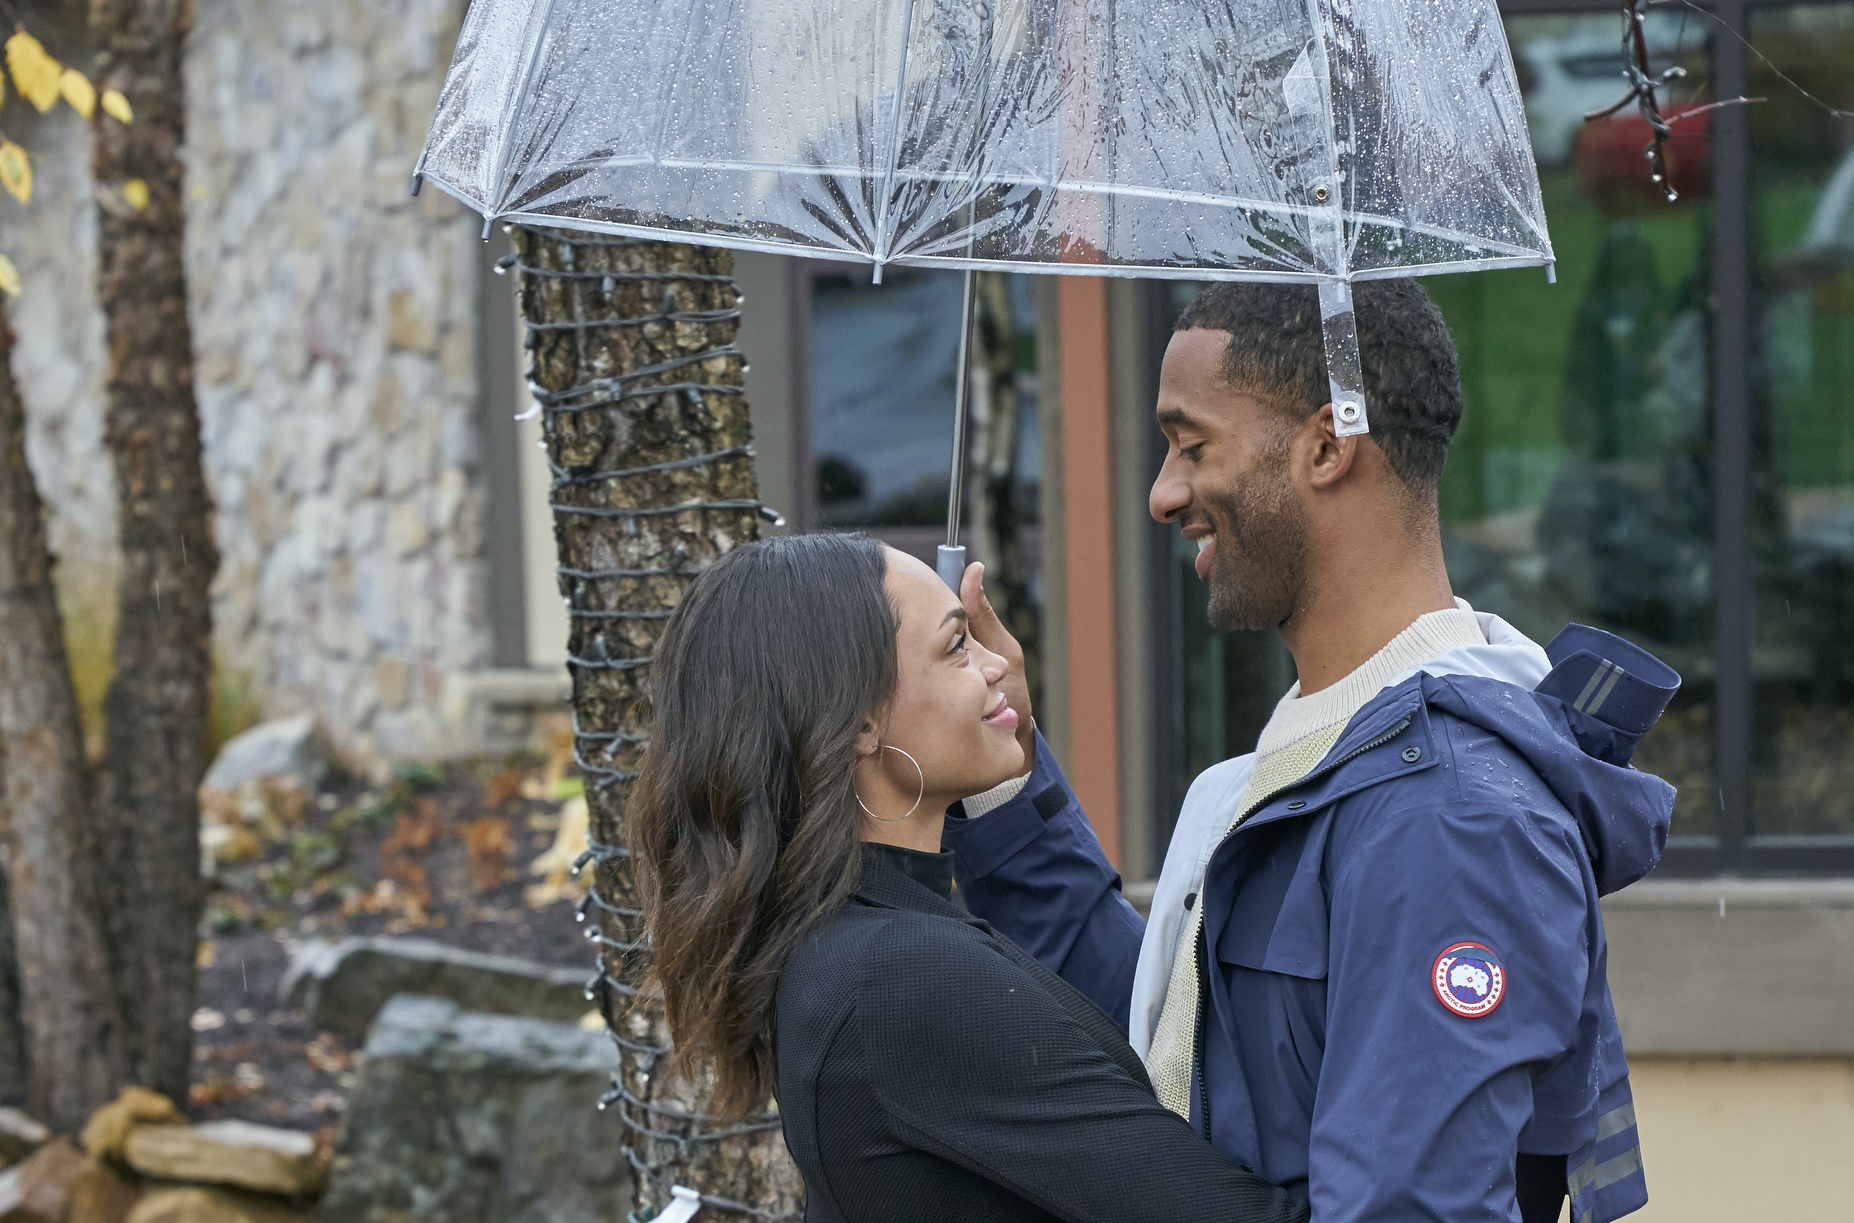 Best Tweets from Tonight's Fantasty Suites on 'The Bachelor'